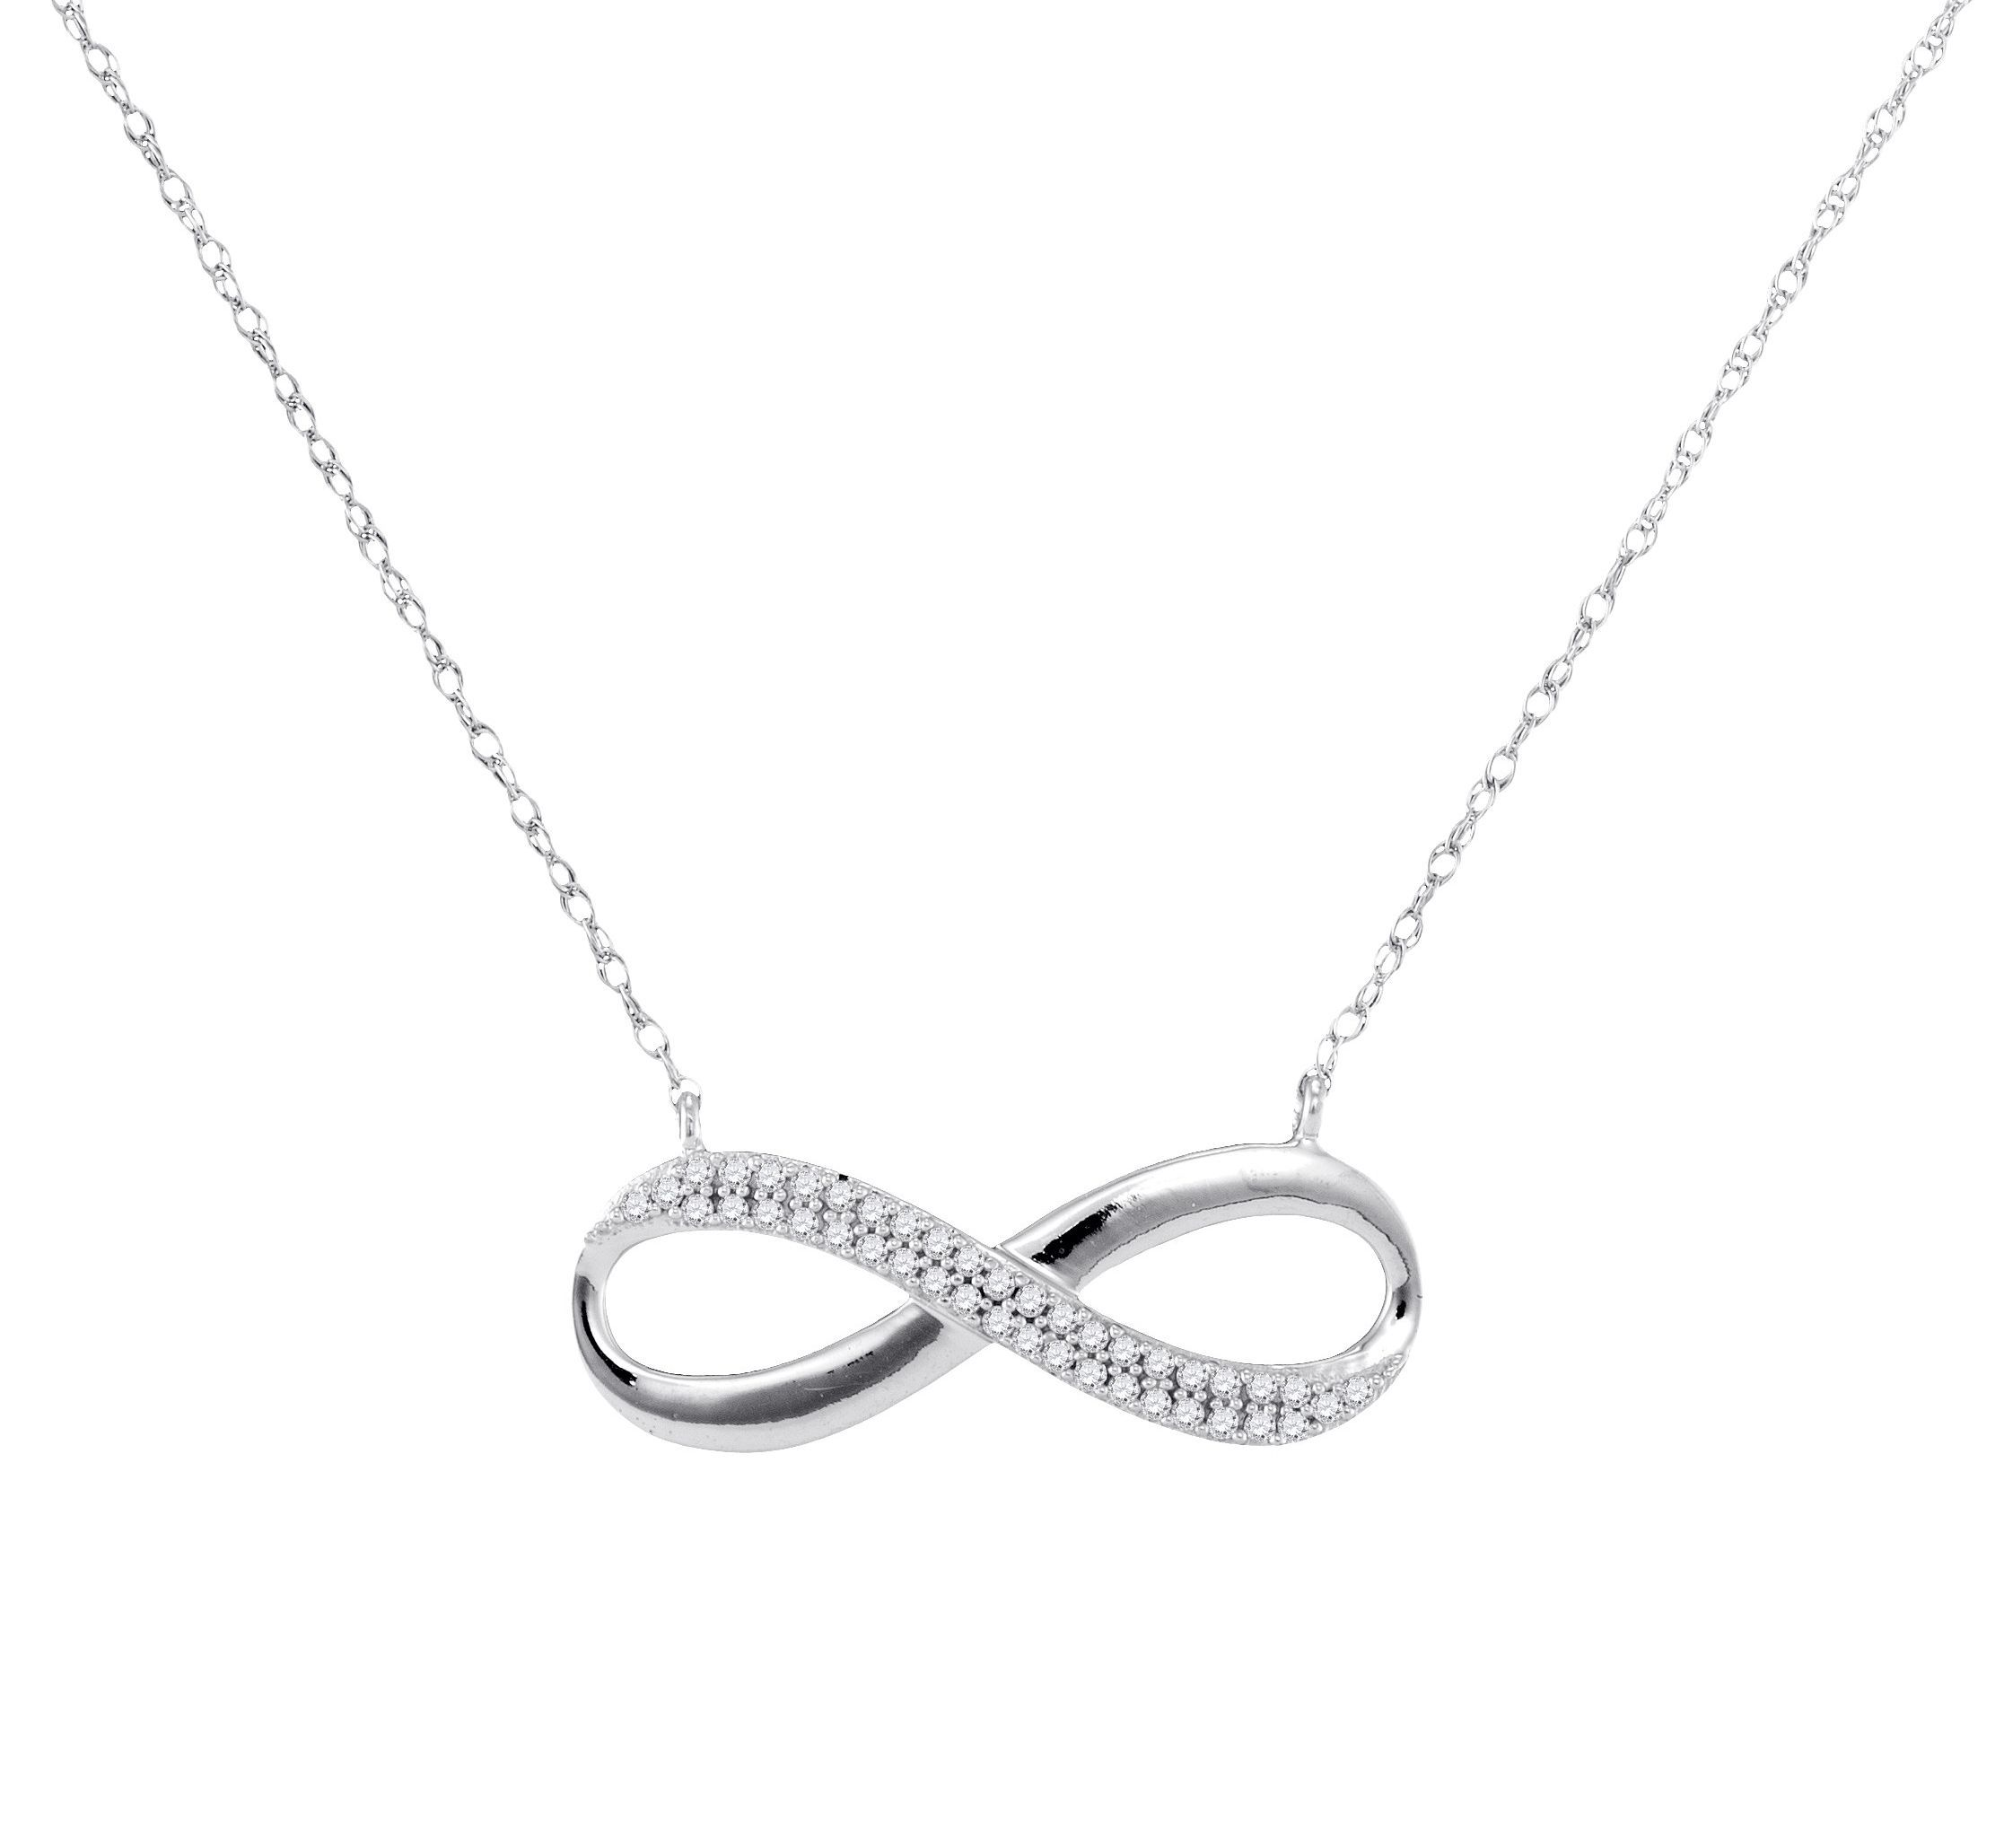 in infinity pendant white gold necklace